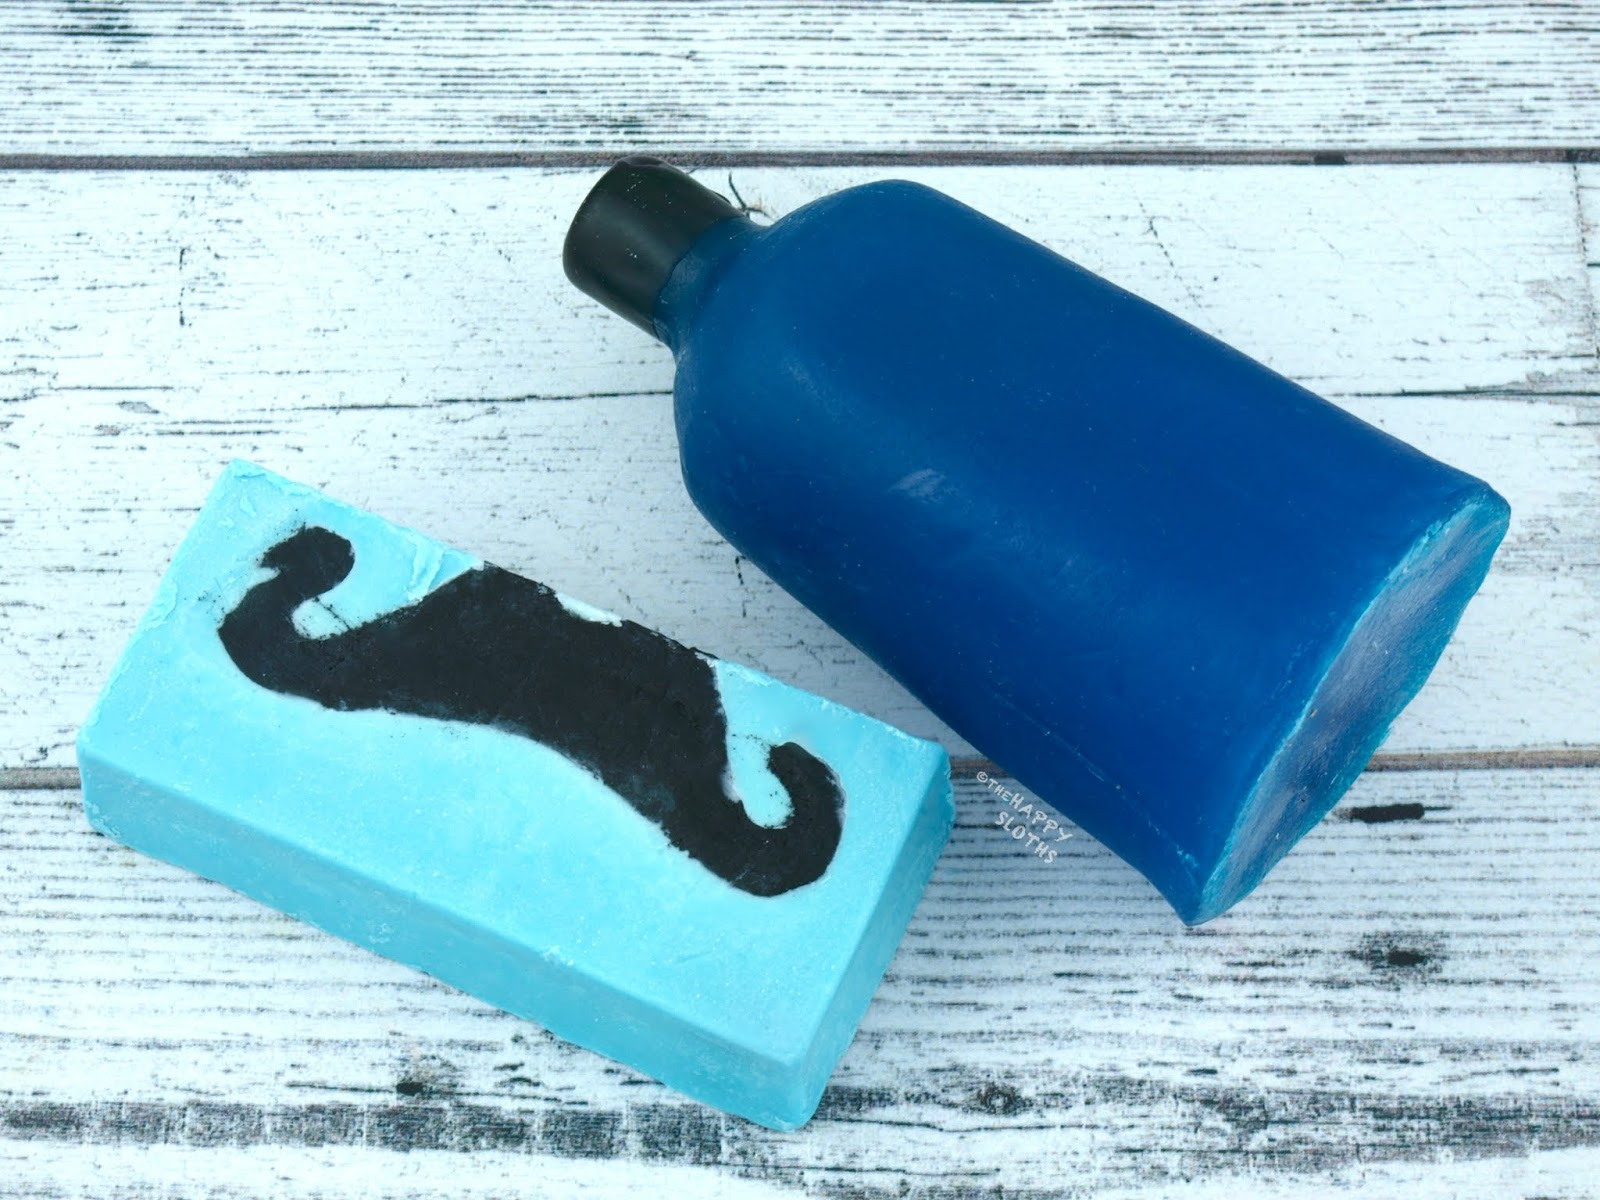 Lush | Father's Day 2018 Collection | Moustachio Soap & Dirty Springwash Naked Shower Gel: Review